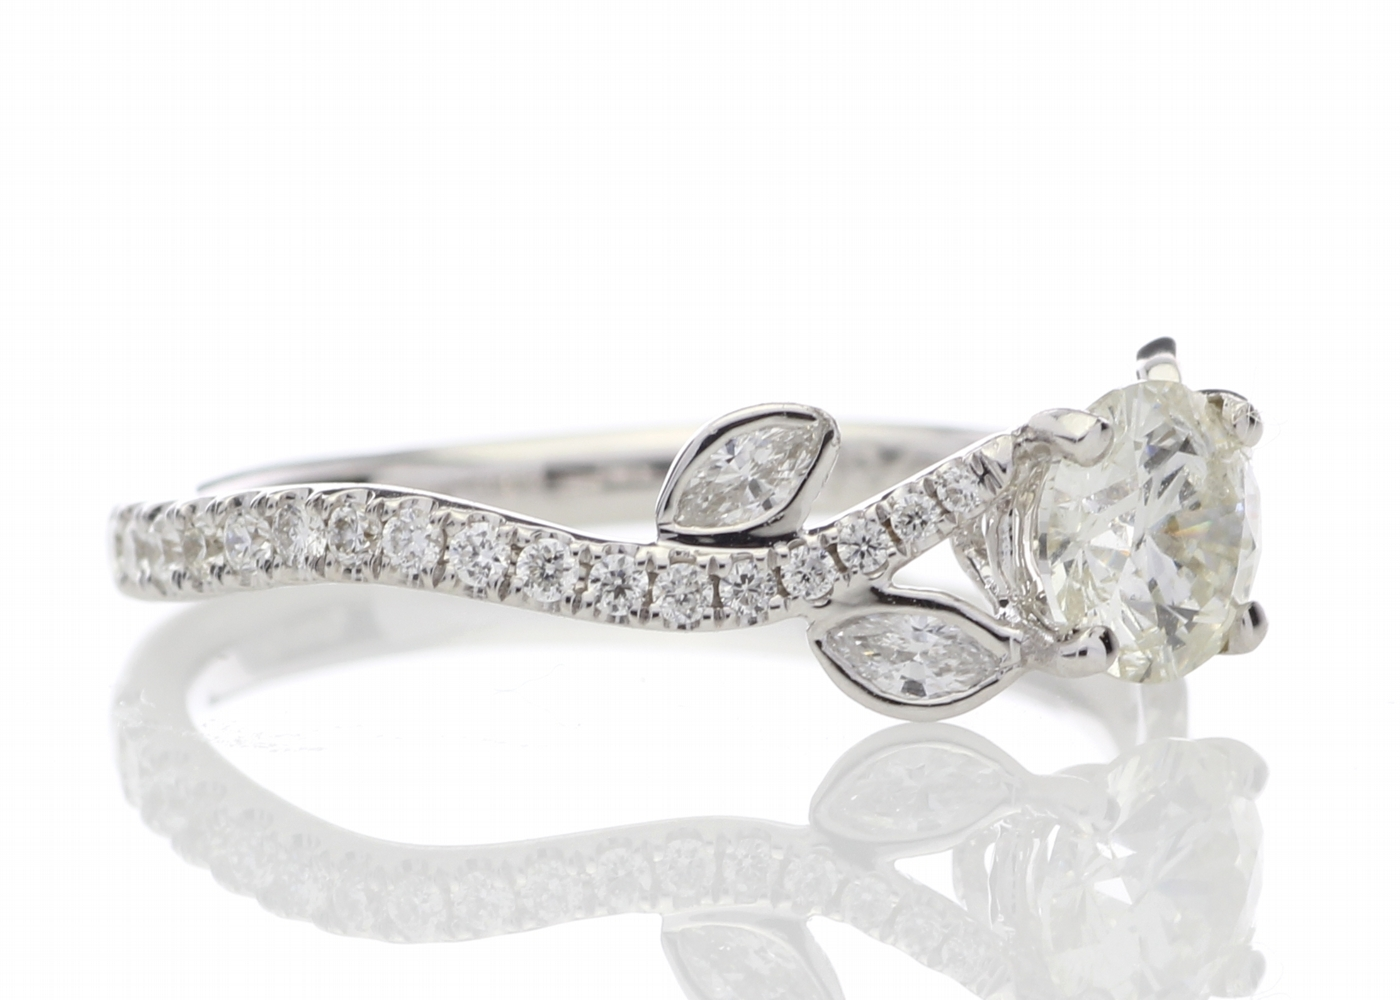 18ct White Gold Single Stone Diamond Ring With Stone Set Shoulders (0.55) 0.91 Carats - Image 4 of 5